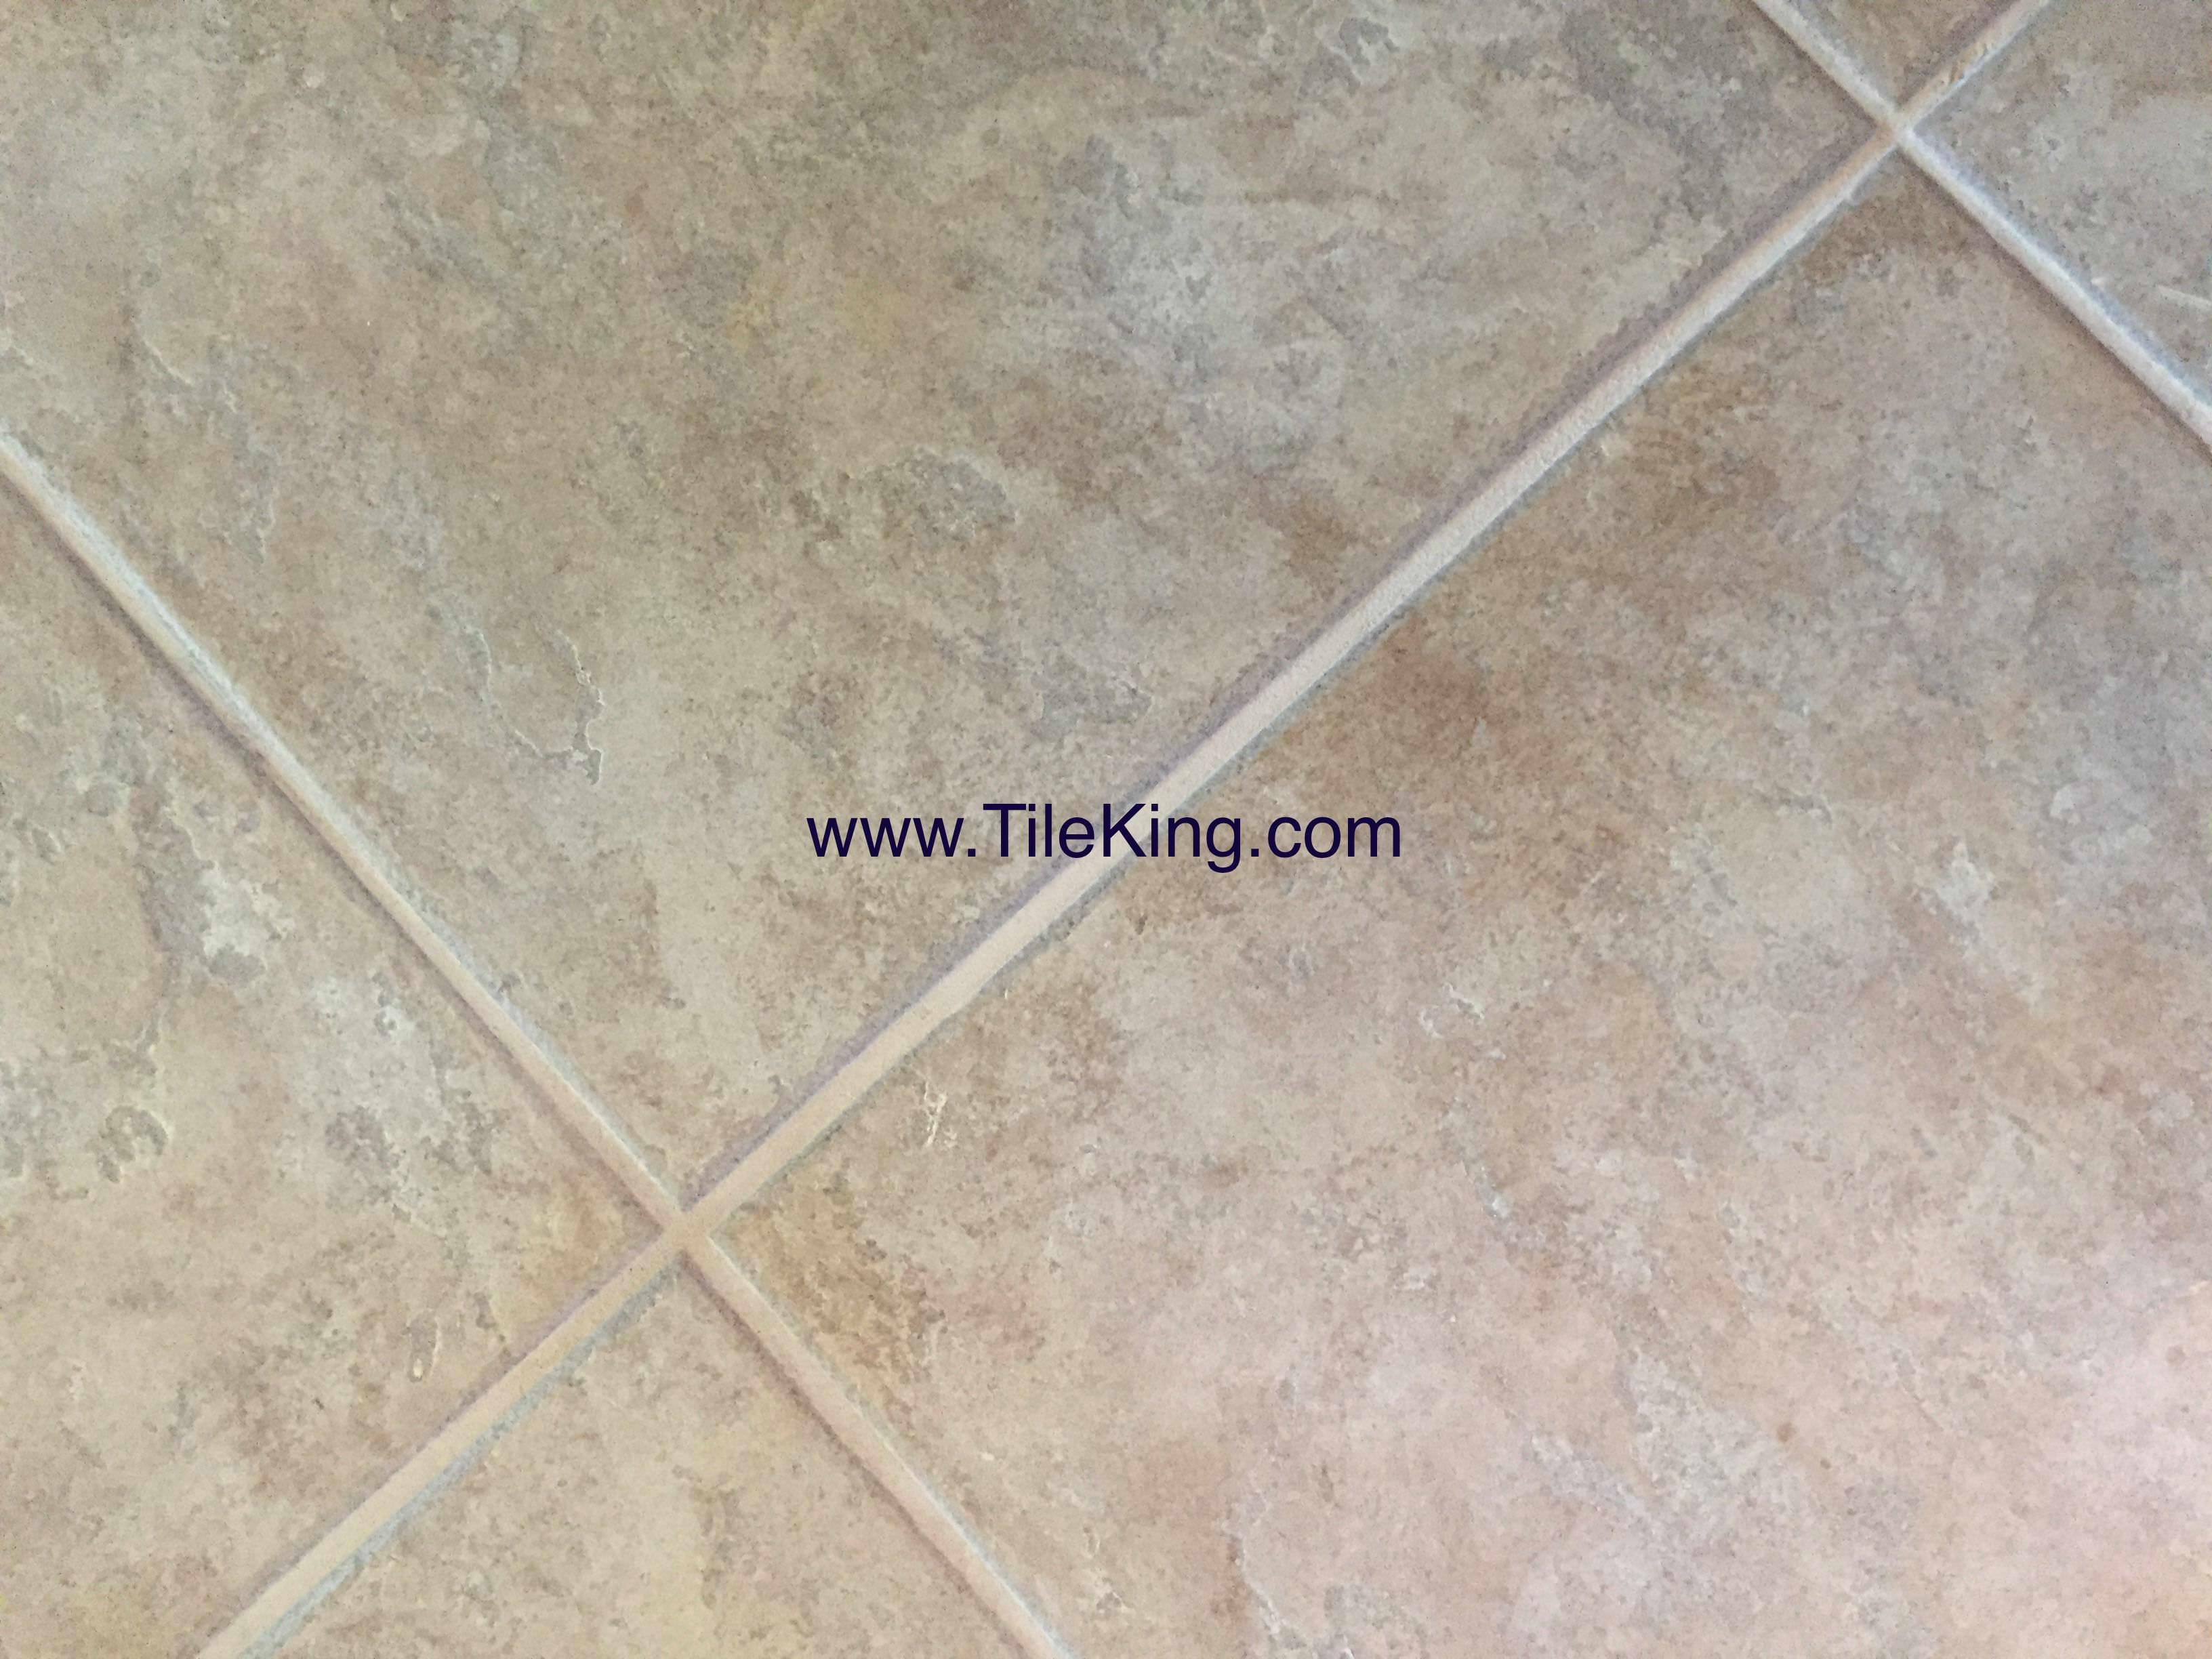 travertine chipping after repairs